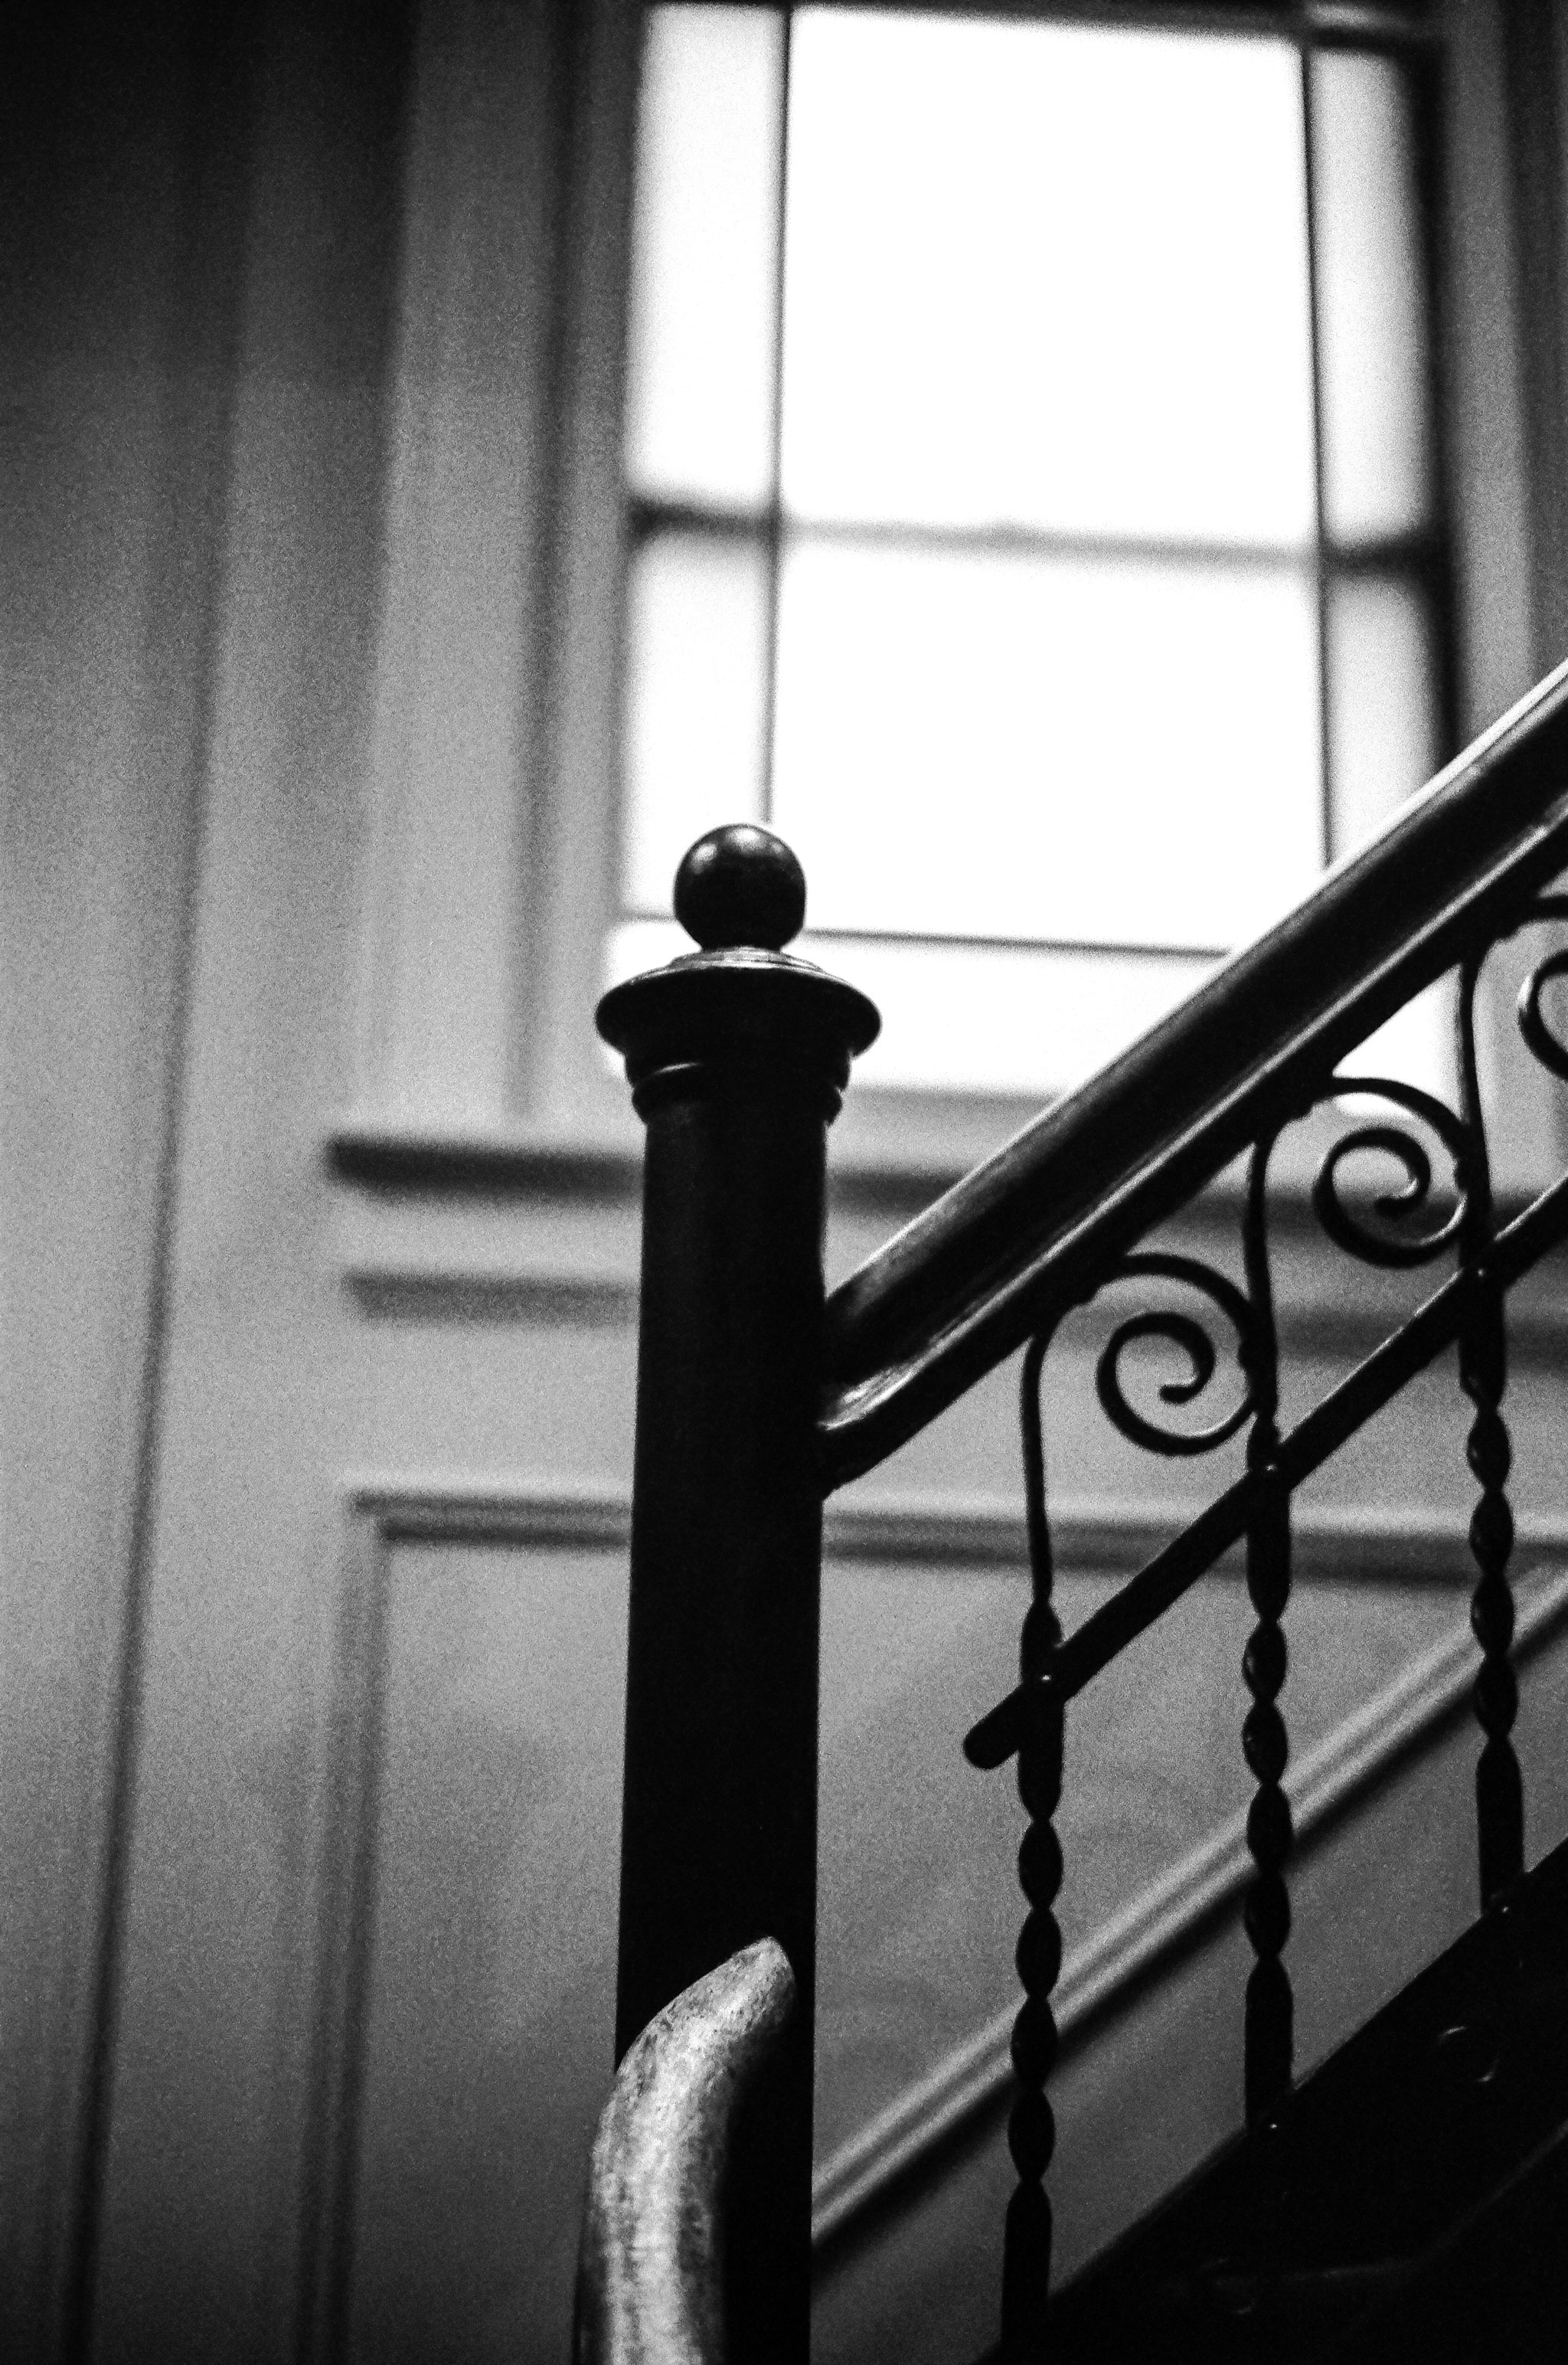 Michael Fauscette | Up The Staircase | Leica M6